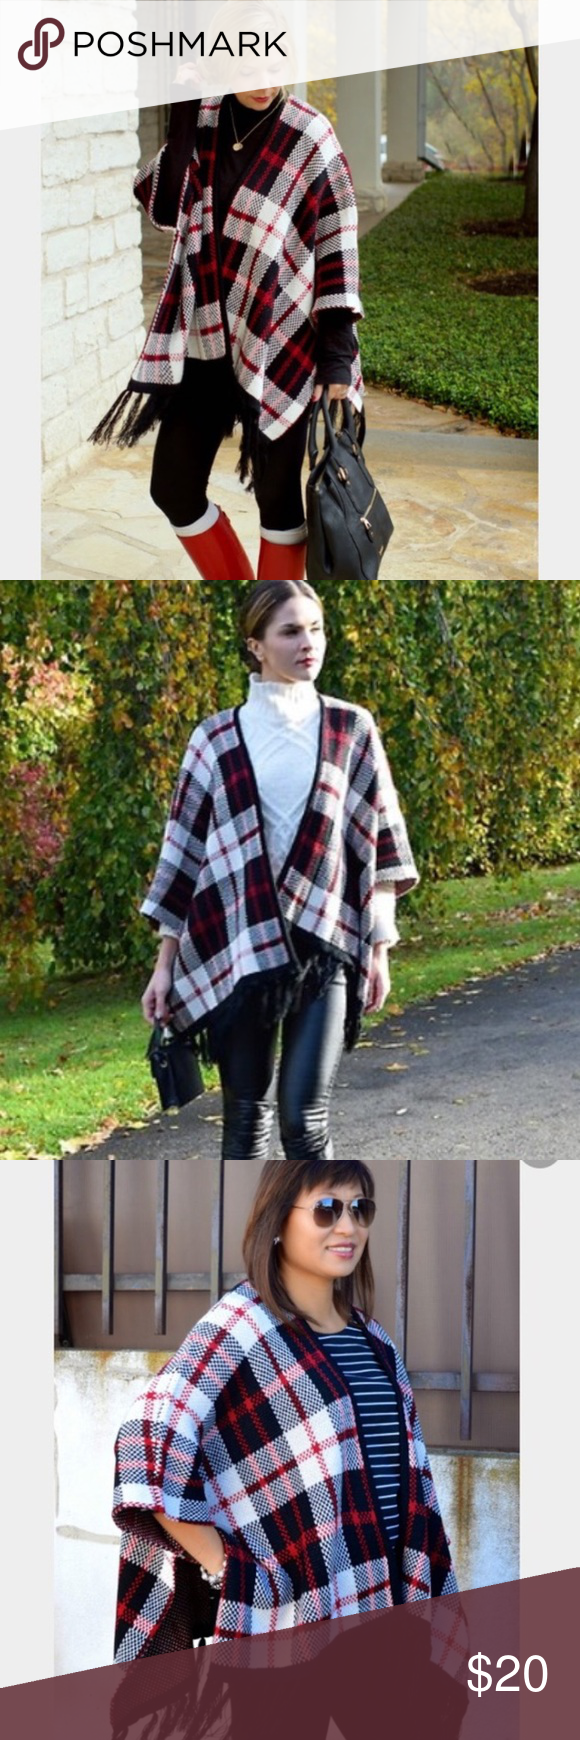 Plaid Knit Poncho Reposhing. Although it is a size small it would fit size medium or large best. Warm and thick knitted material. Great condition!! Forever 21 Sweaters Shrugs & Ponchos